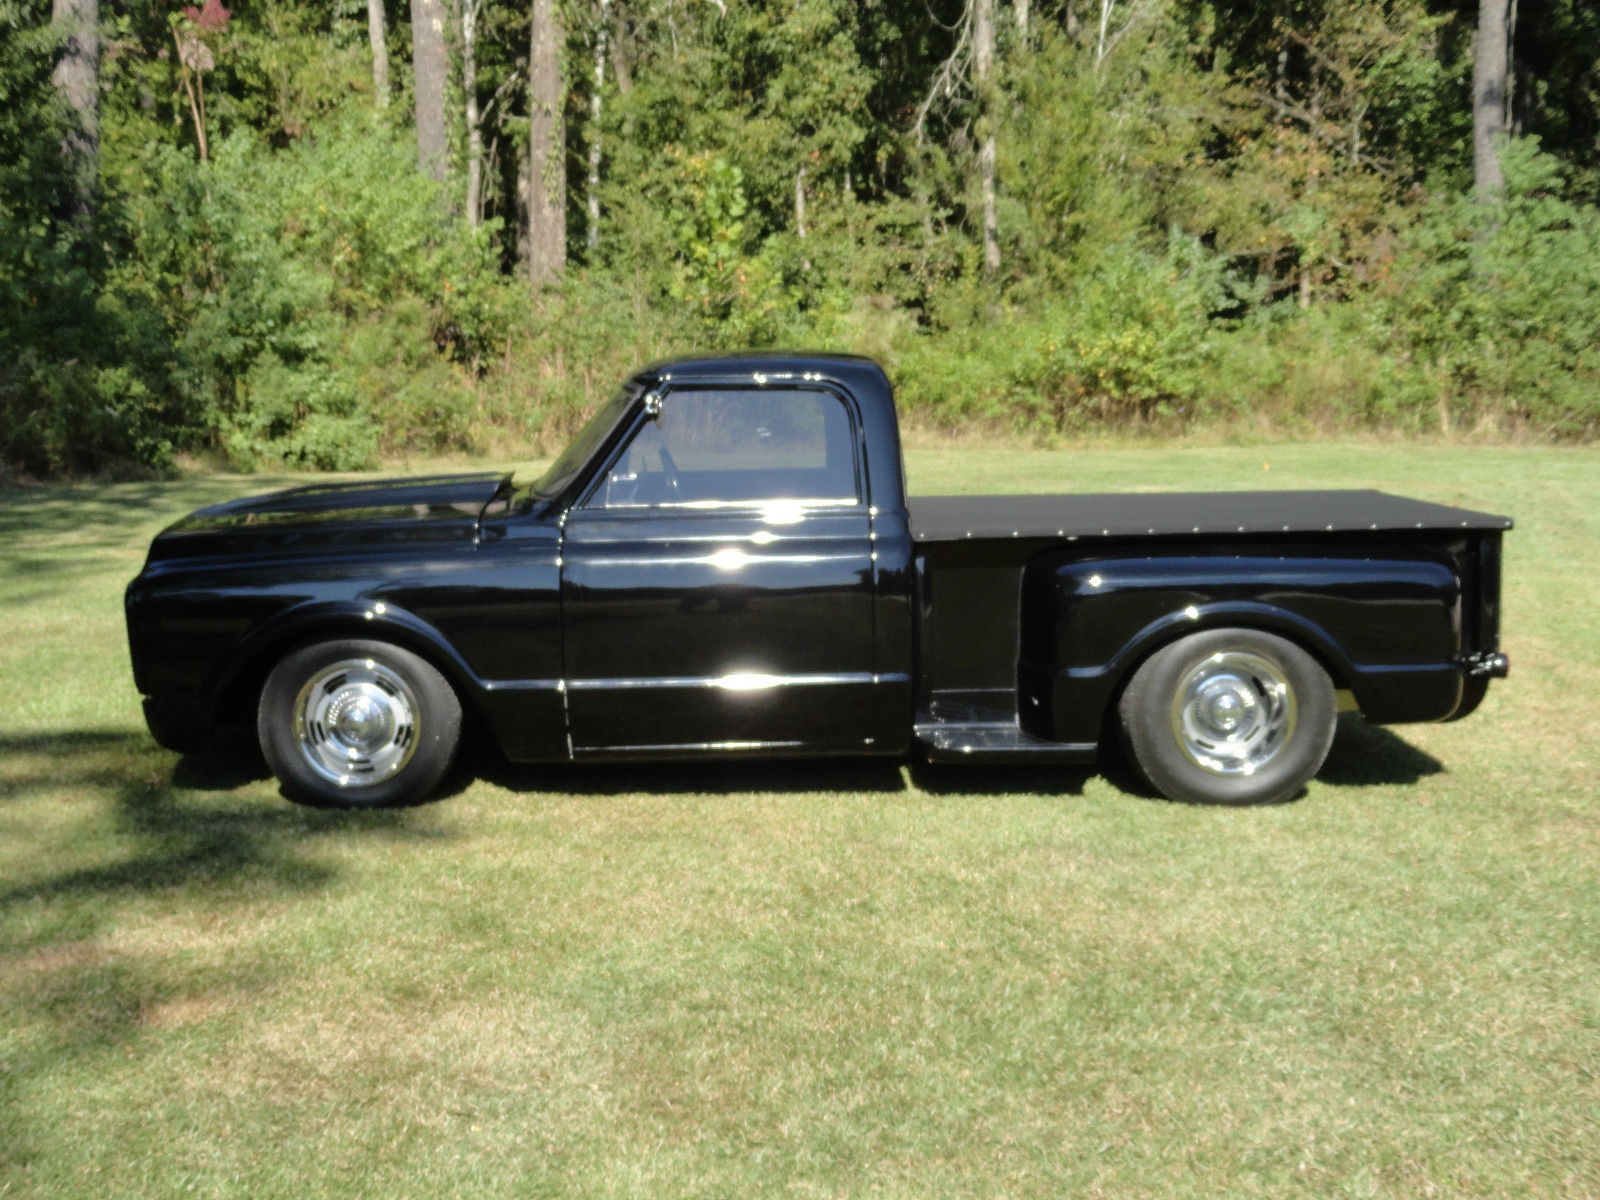 1970 c10 street rod fast loud stepside chevrolet truck hot rod. Black Bedroom Furniture Sets. Home Design Ideas